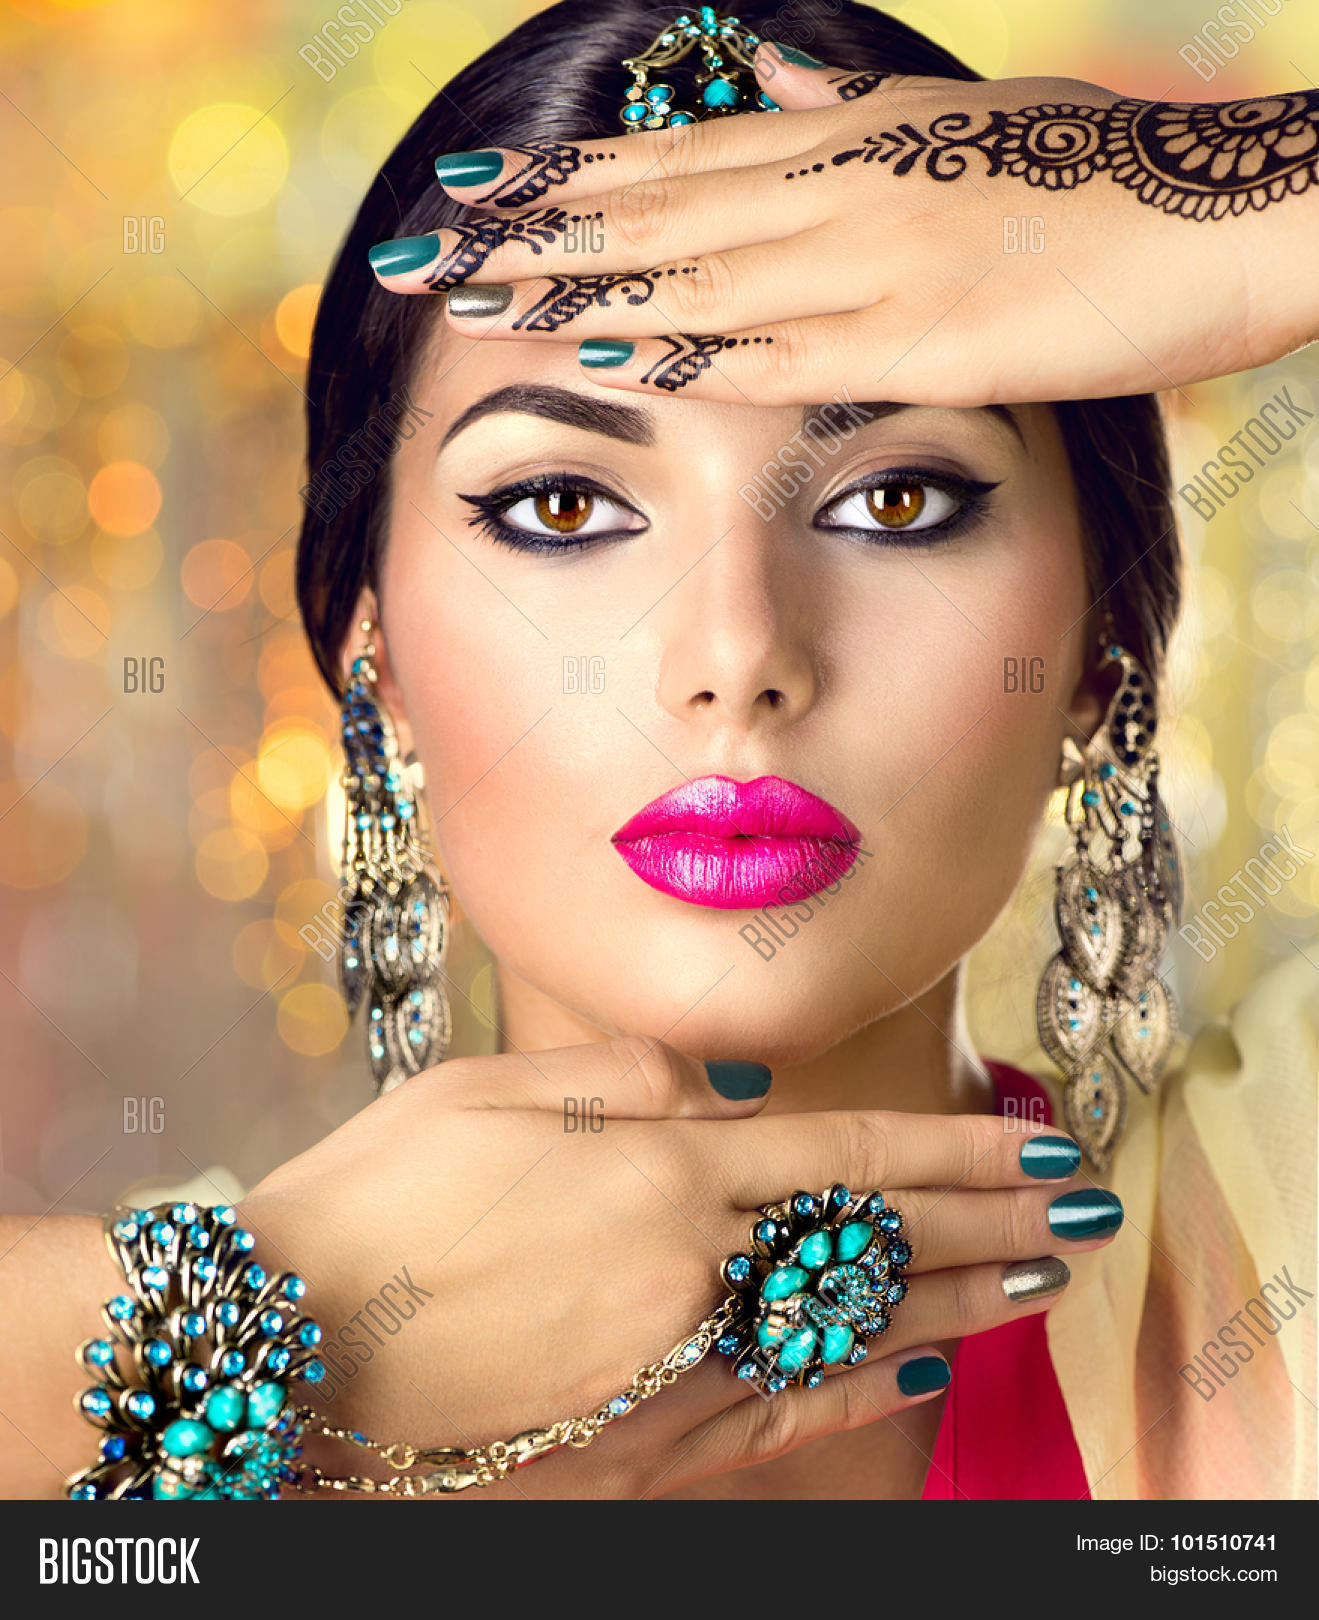 Beautiful fashion indian woman image photo bigstock for Oriental accessories